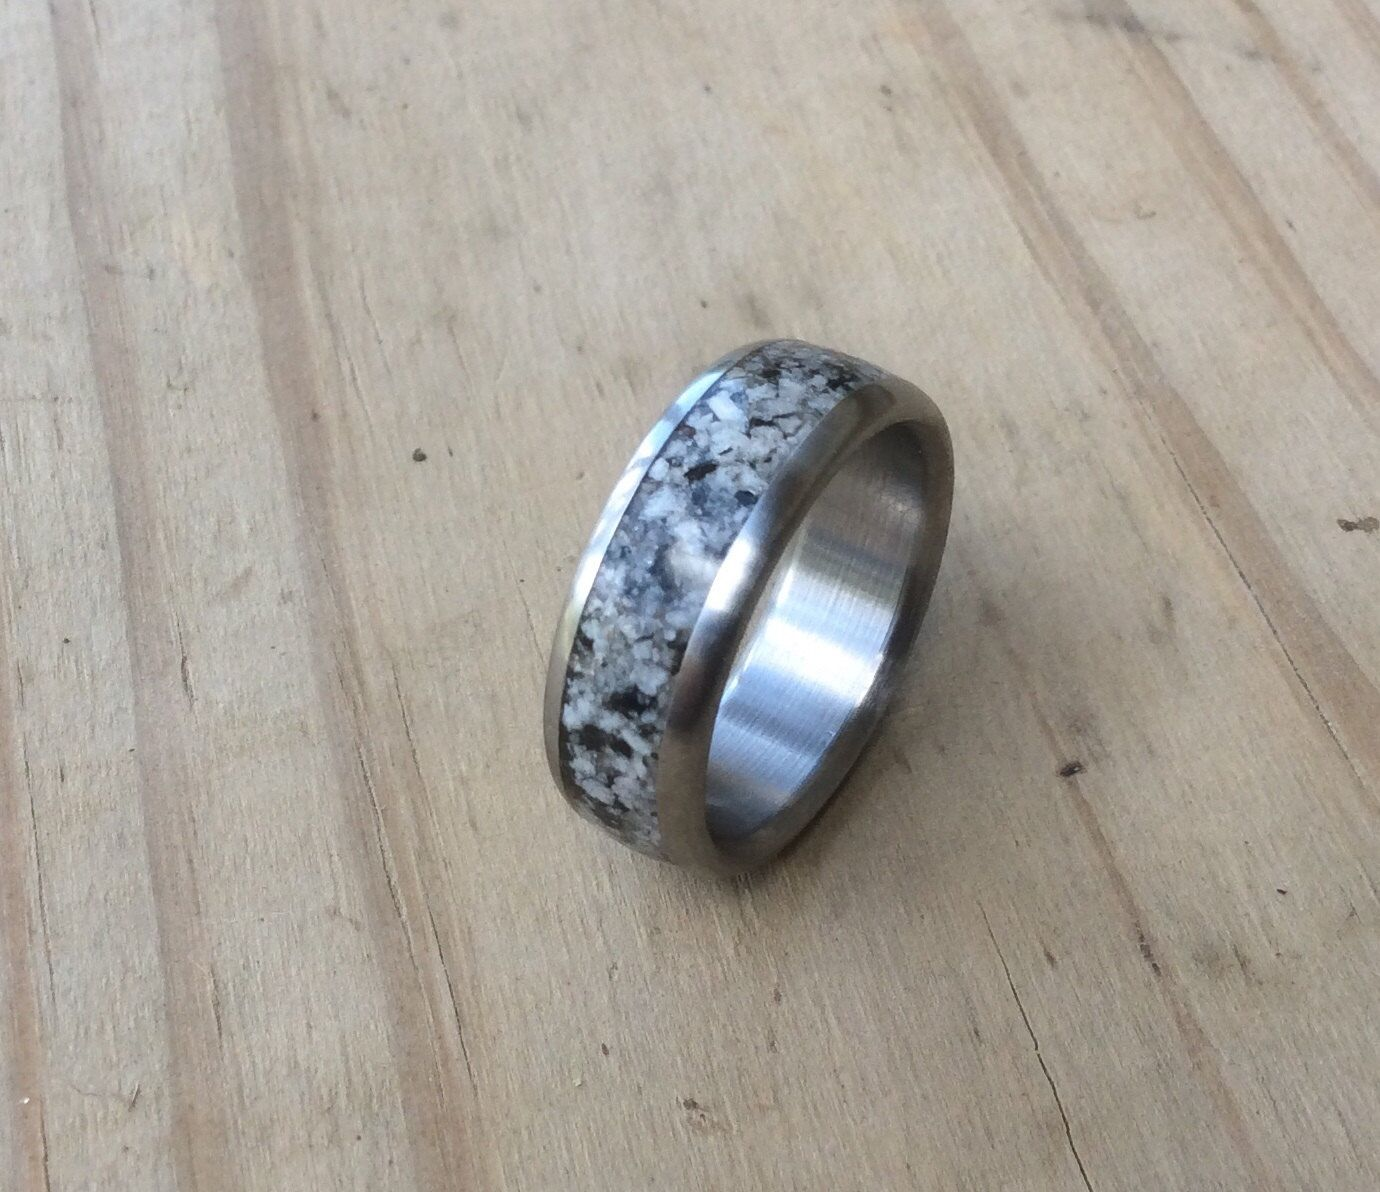 Anium And Granite Inlay Ring By Robandlean On Etsy Https Www